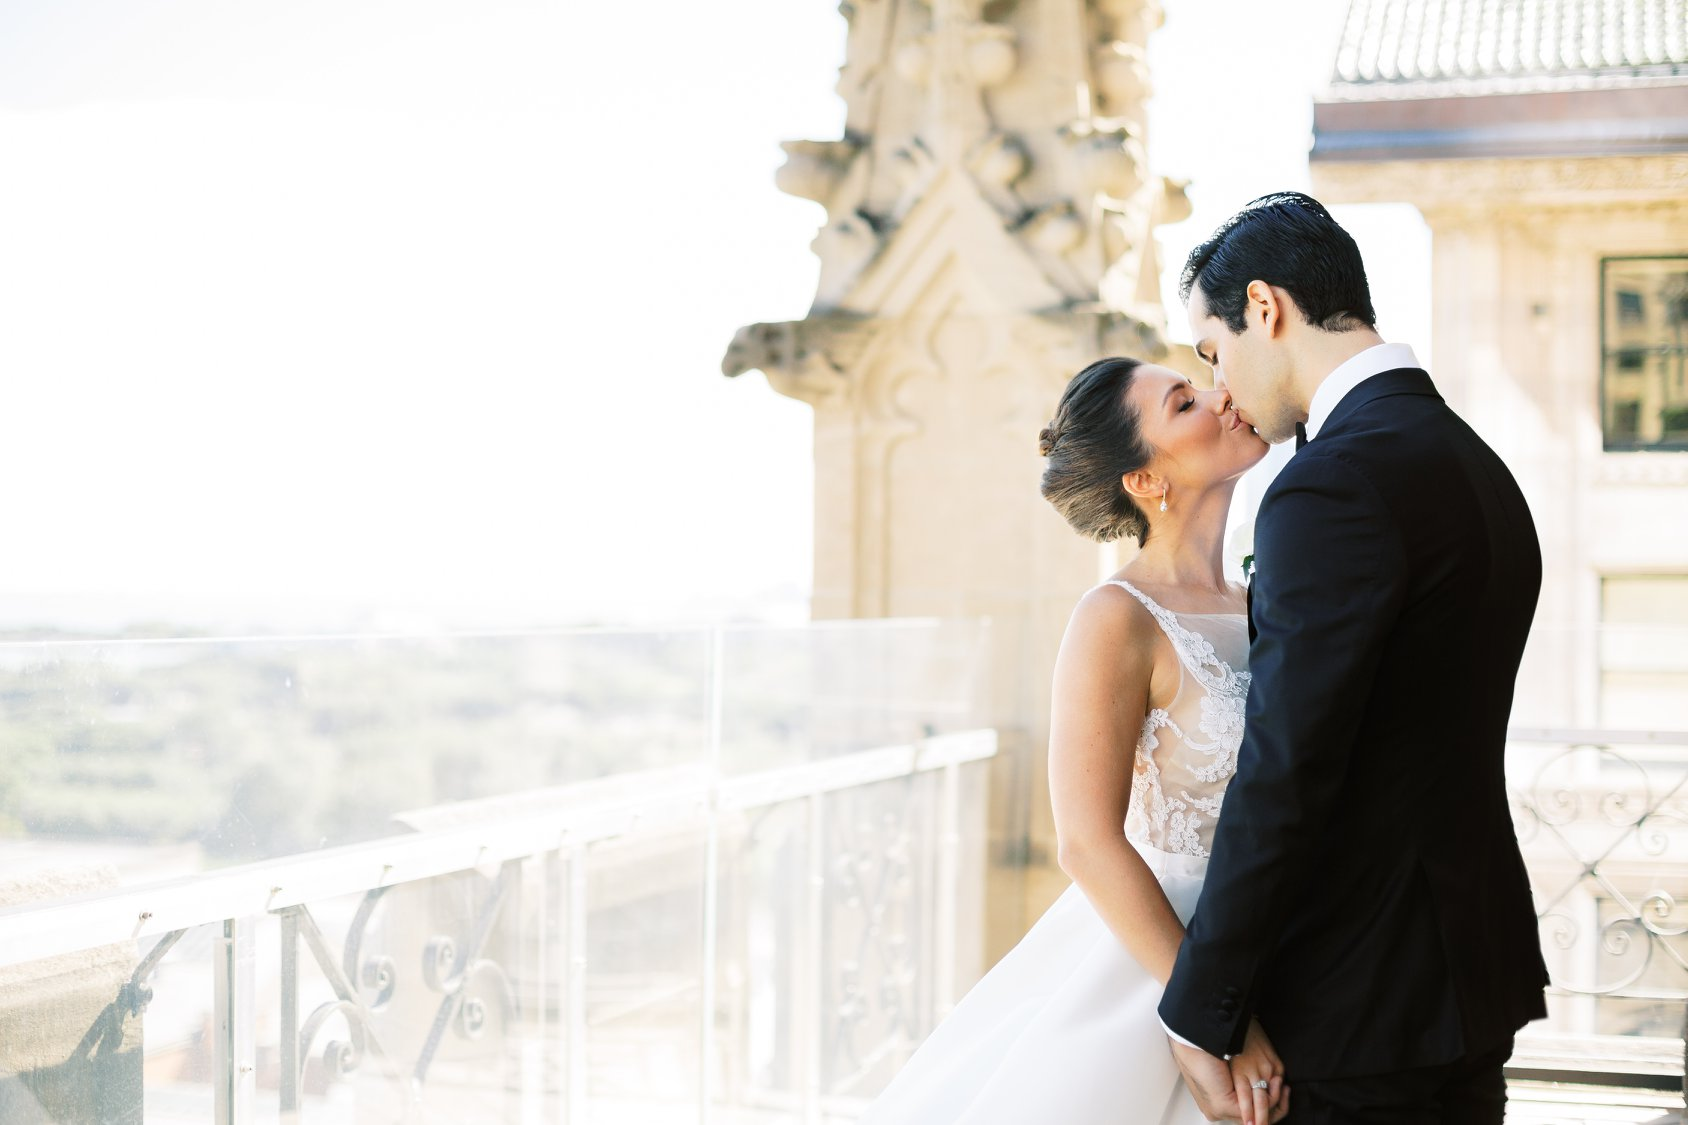 Custom Wedding Suits & Tuxedos in Chicago and San Francisco